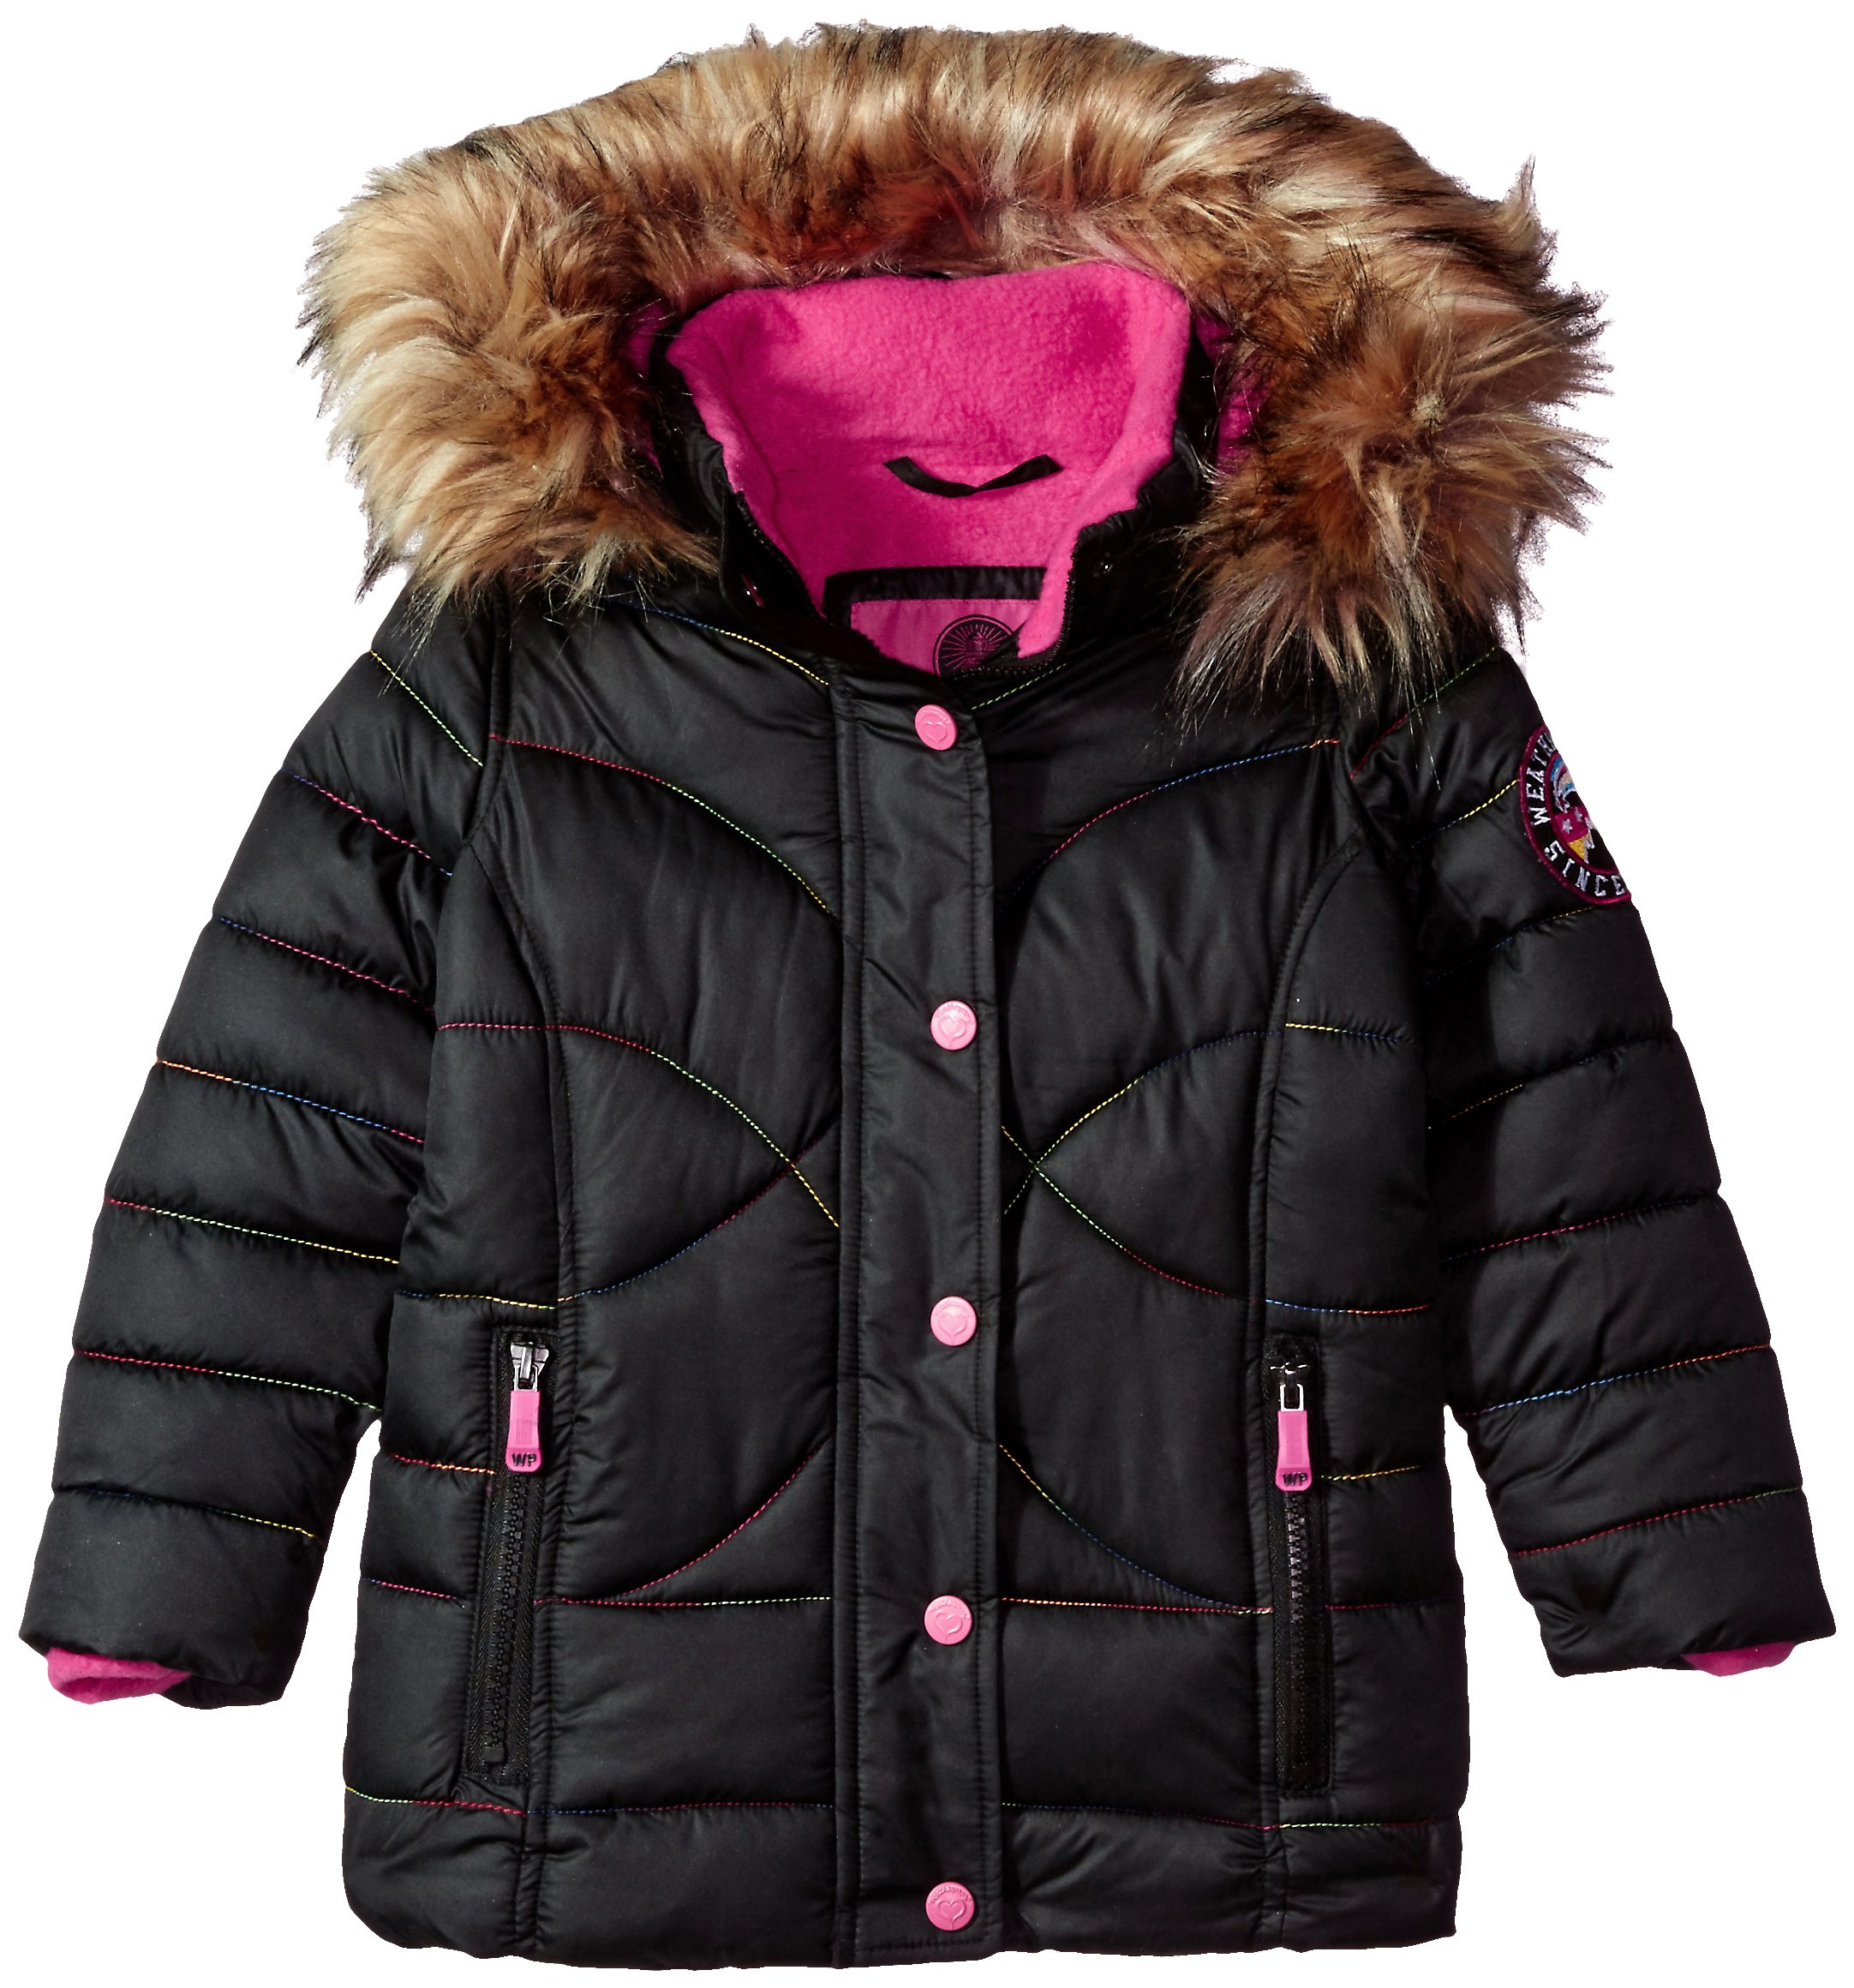 Weatherproof Little Girls' Outerwear Jacket (More Styles Available), Rainbow Stitch-WG149-Black, 4